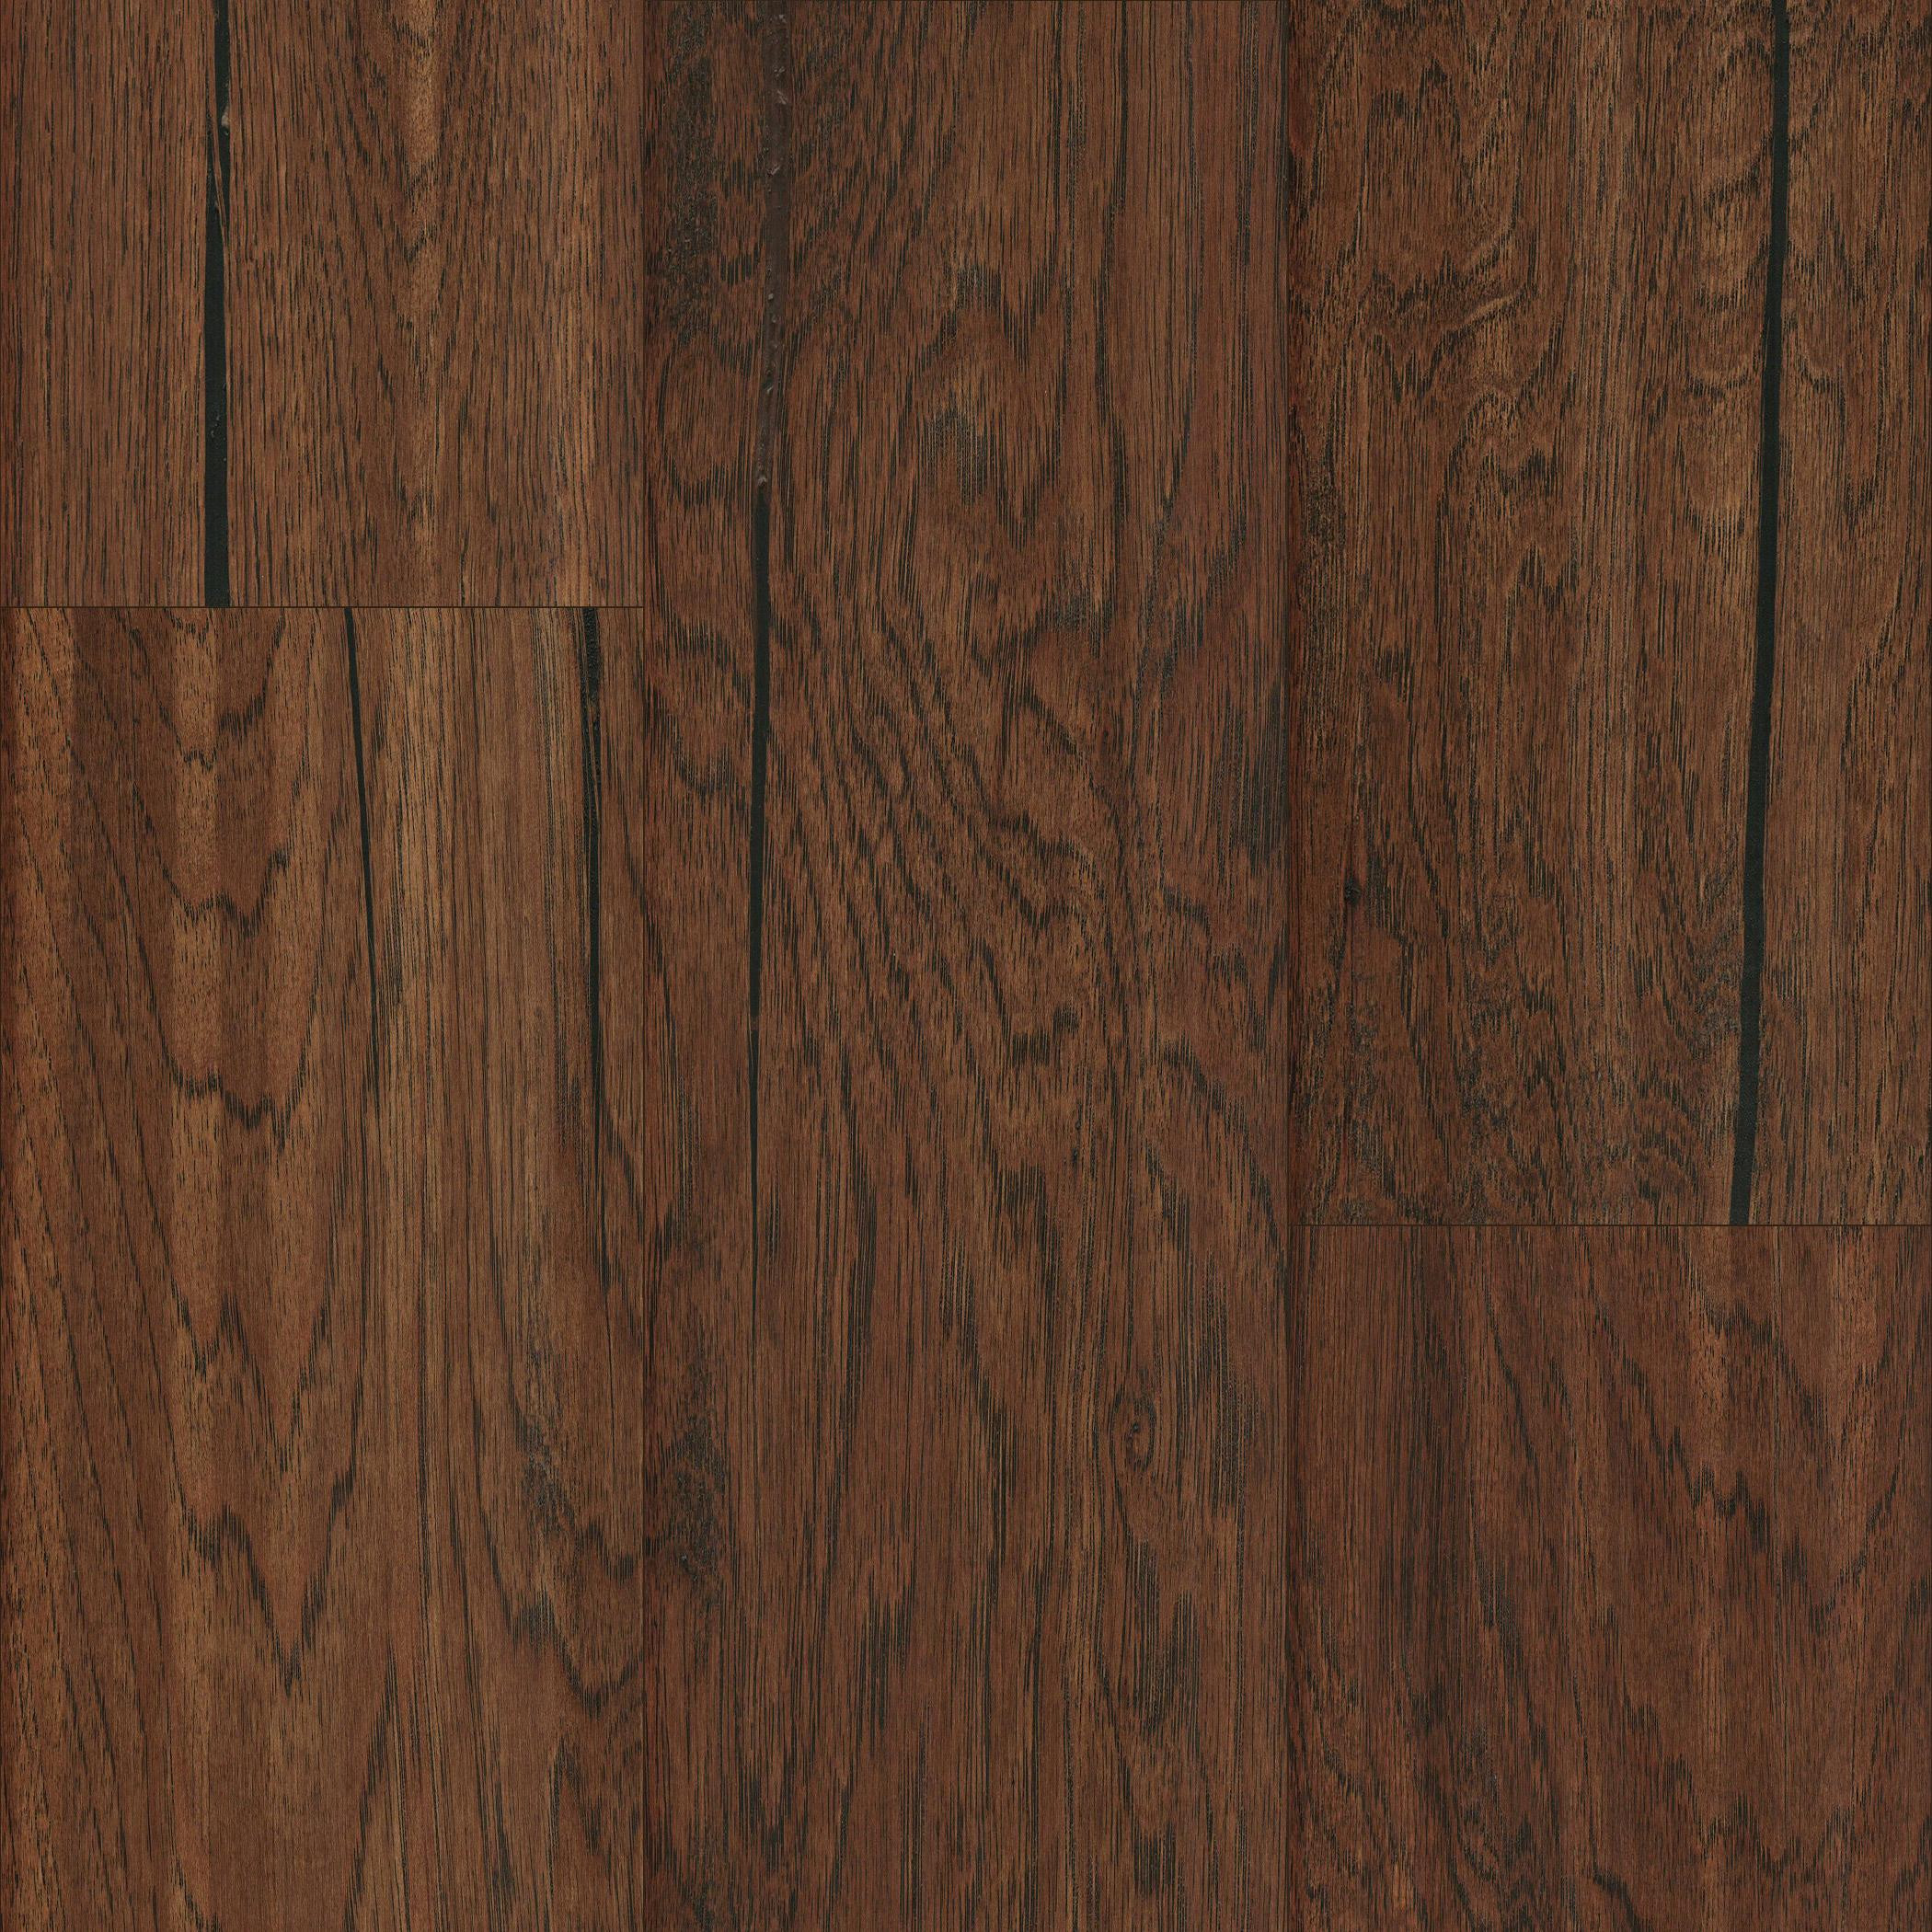 wide plank hickory hardwood flooring of mullican san marco hickory provincial 7 sculpted engineered throughout mullican san marco hickory provincial 7 sculpted engineered hardwood flooring